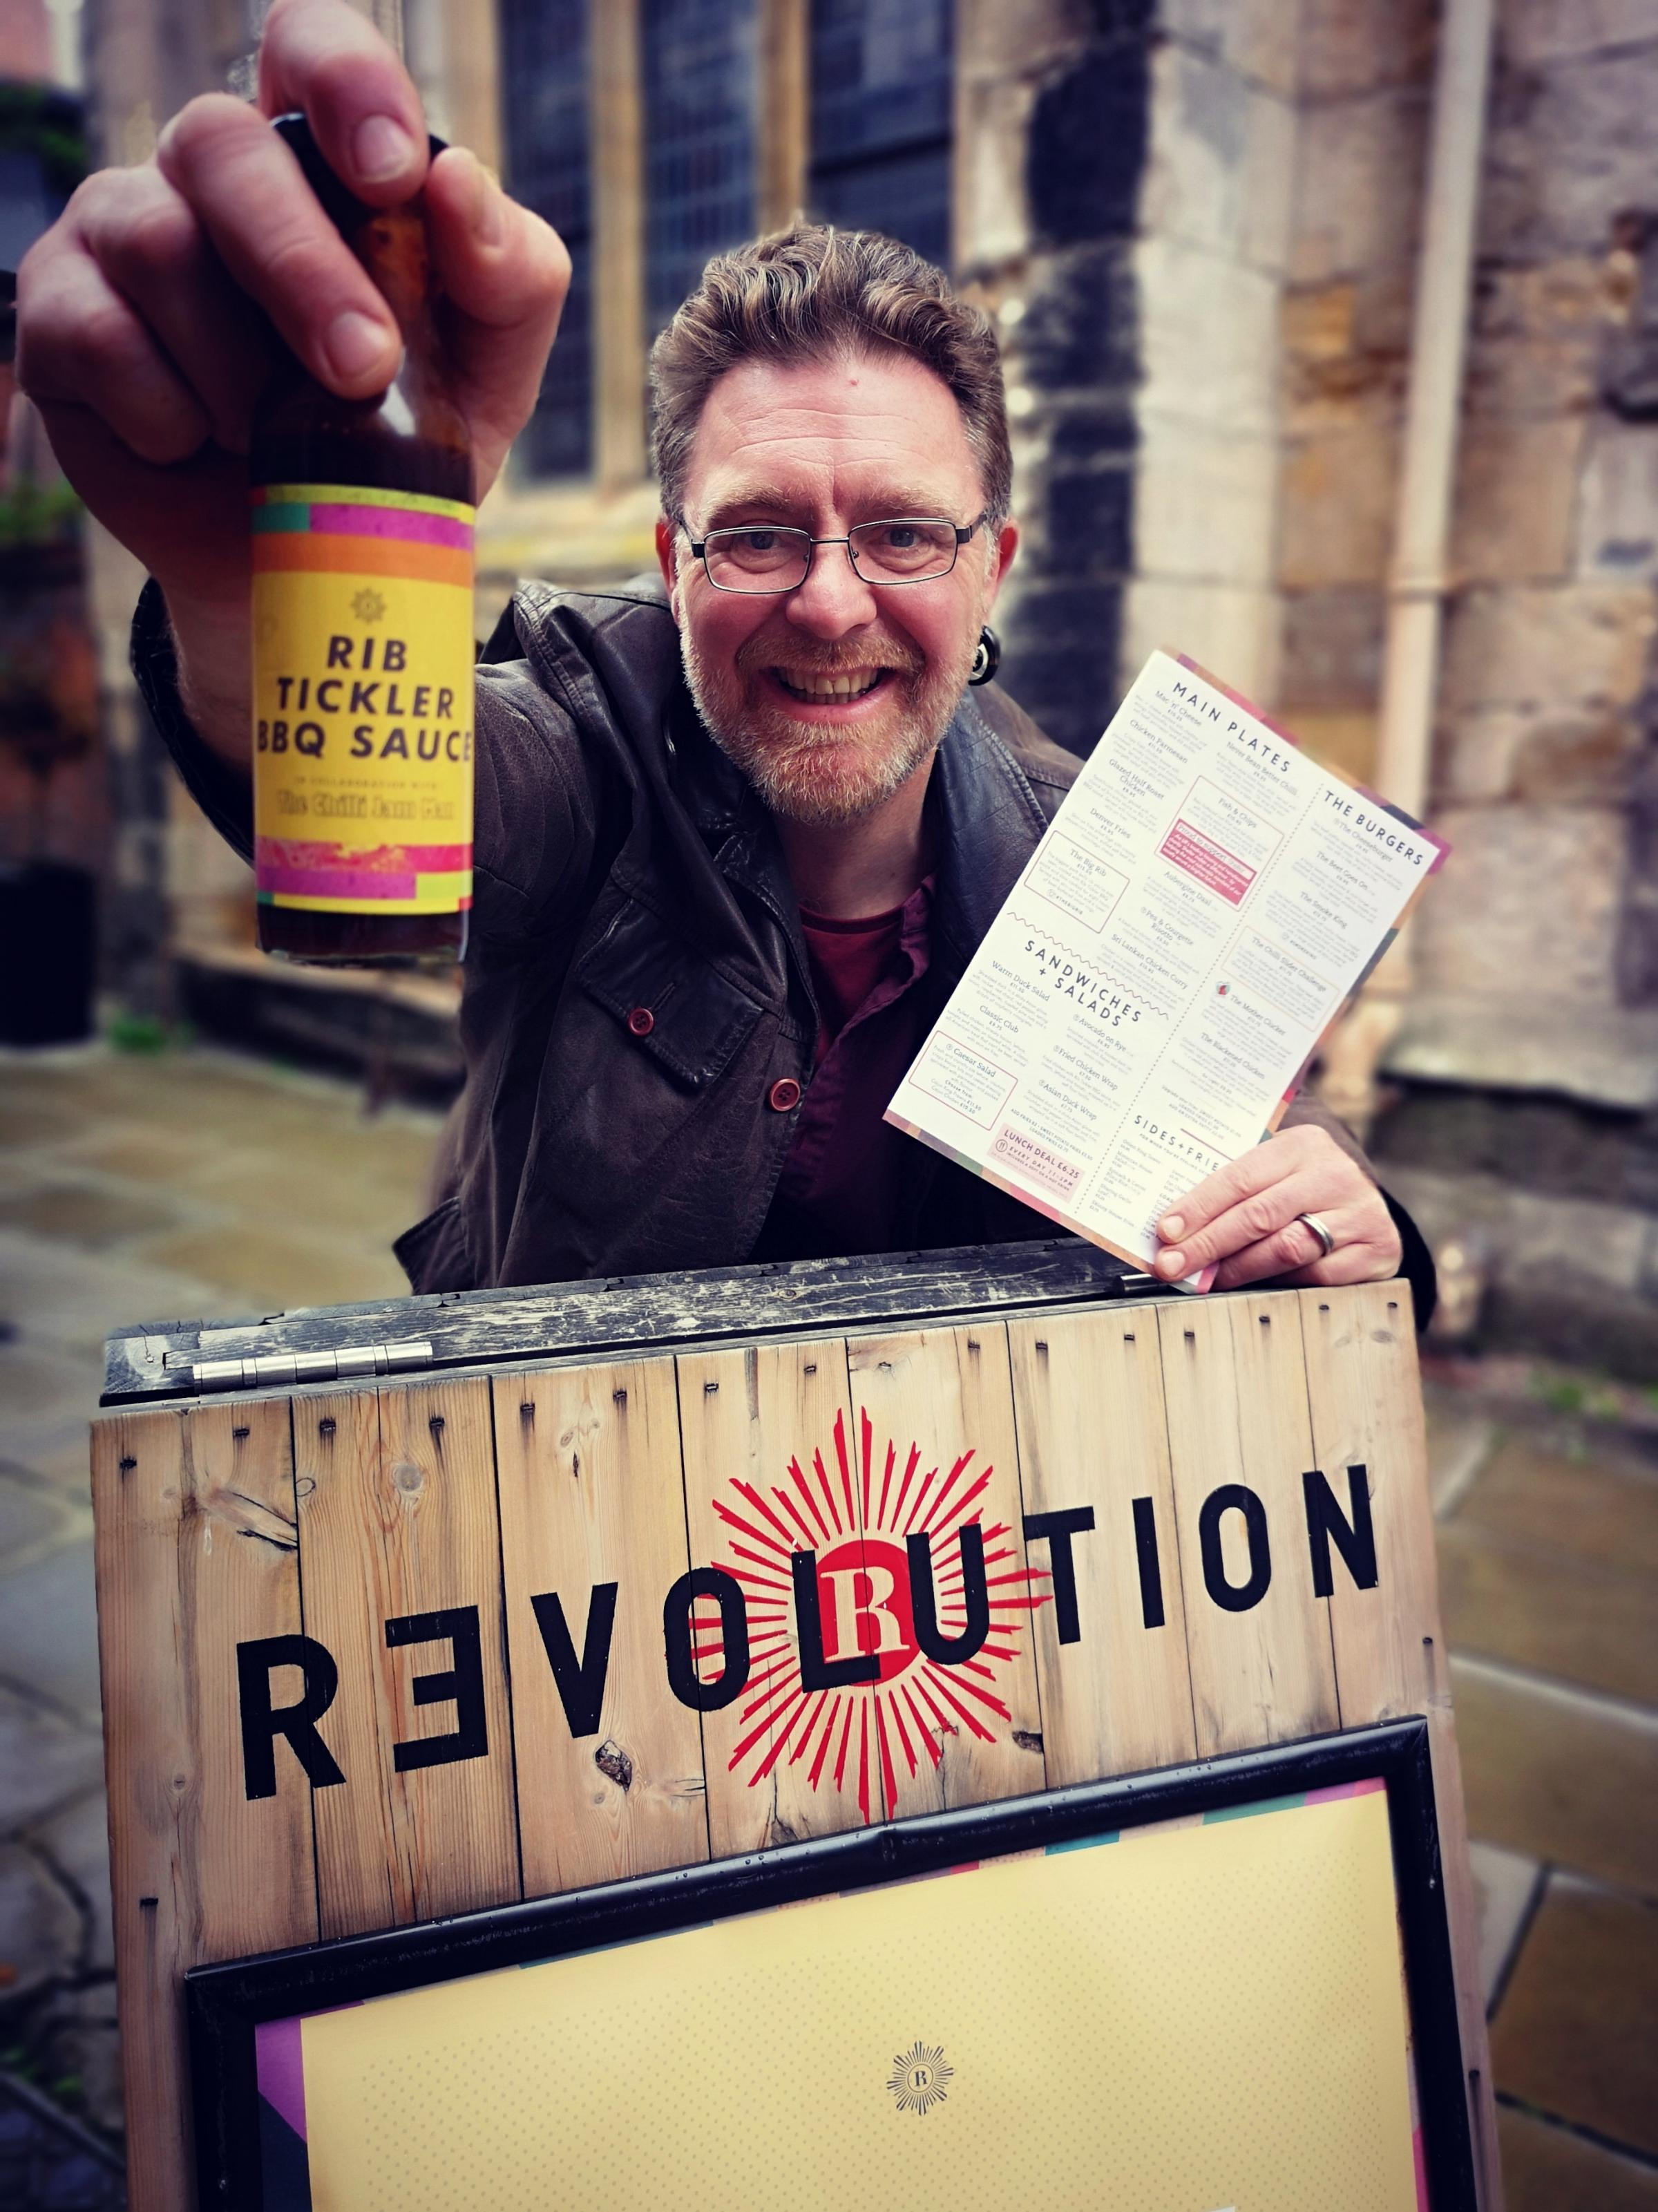 Yorkshire's very own Chilli Jam Man, Simon Barrett, has gone into an exciting collaboration with Revolution Bar